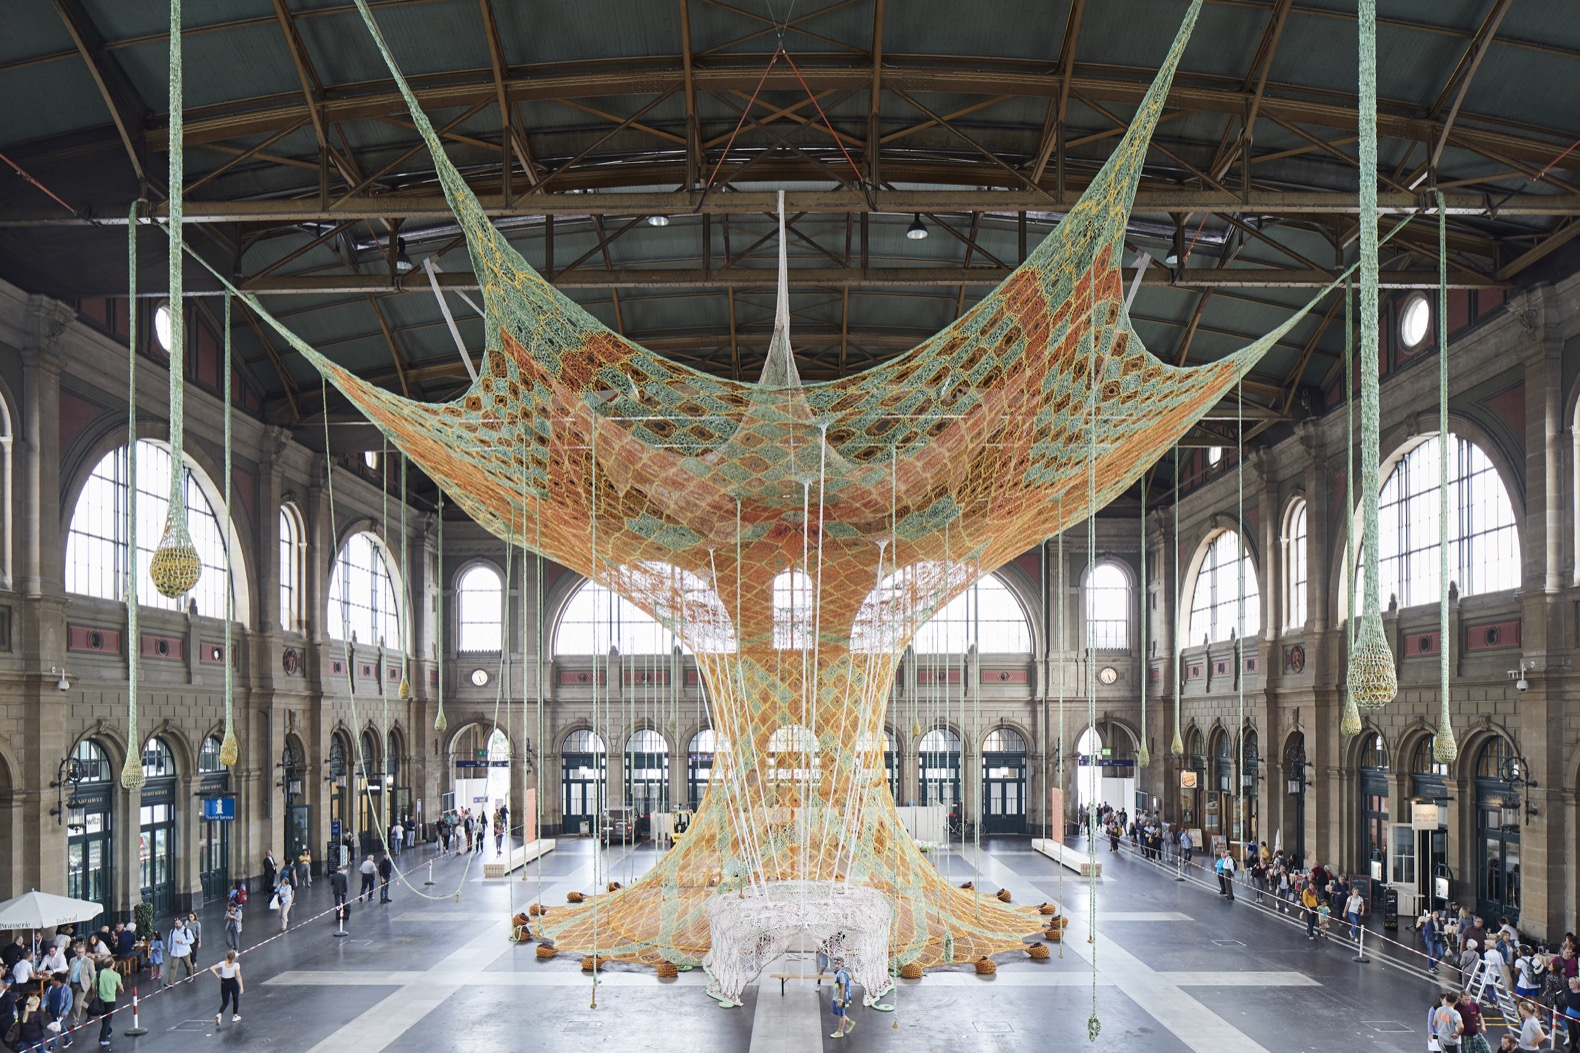 Massive tree-like sculpture takes over Switzerland's largest train station